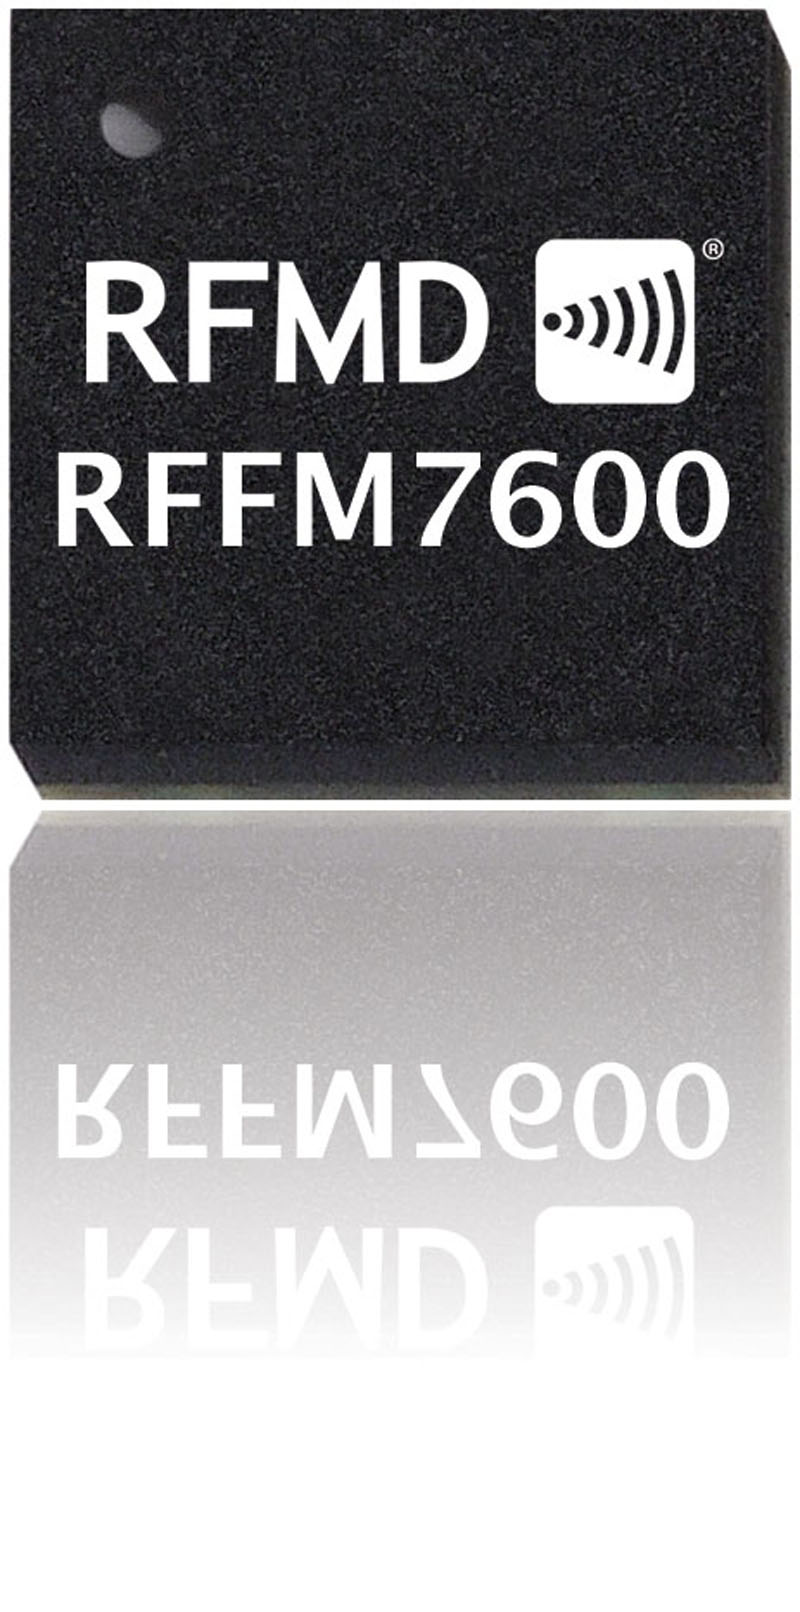 RFFM7600 5.0V, 2.5GHz TO 2.7GHz High Power Front End Module